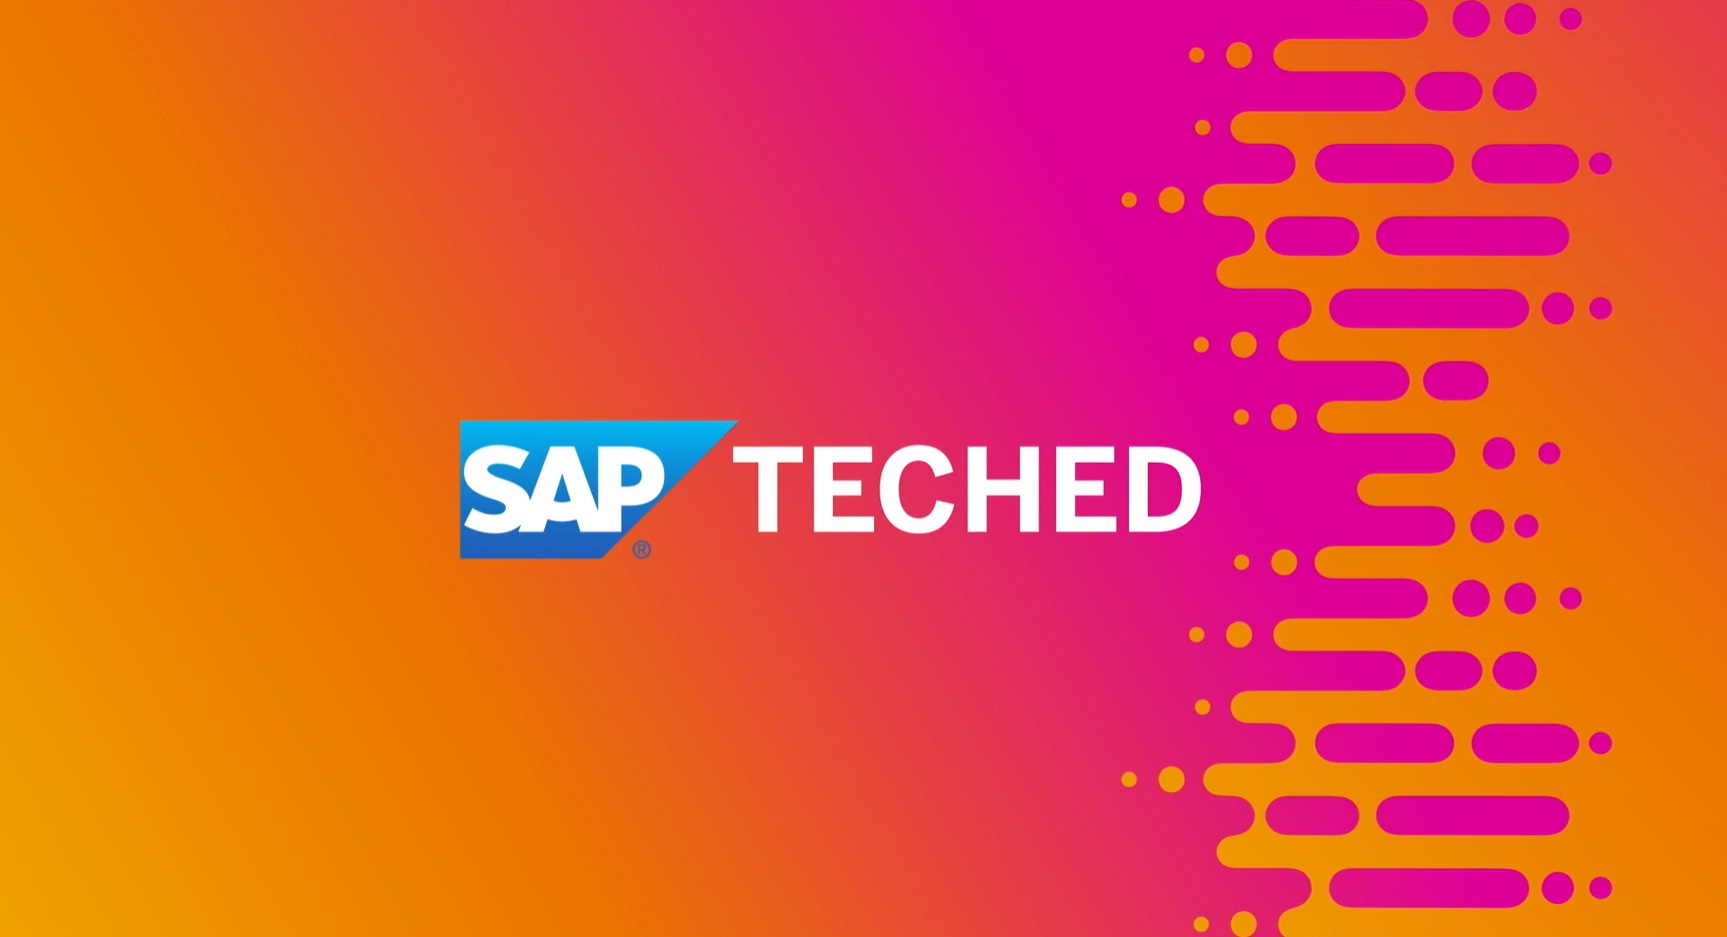 SAP TechEd in 2020